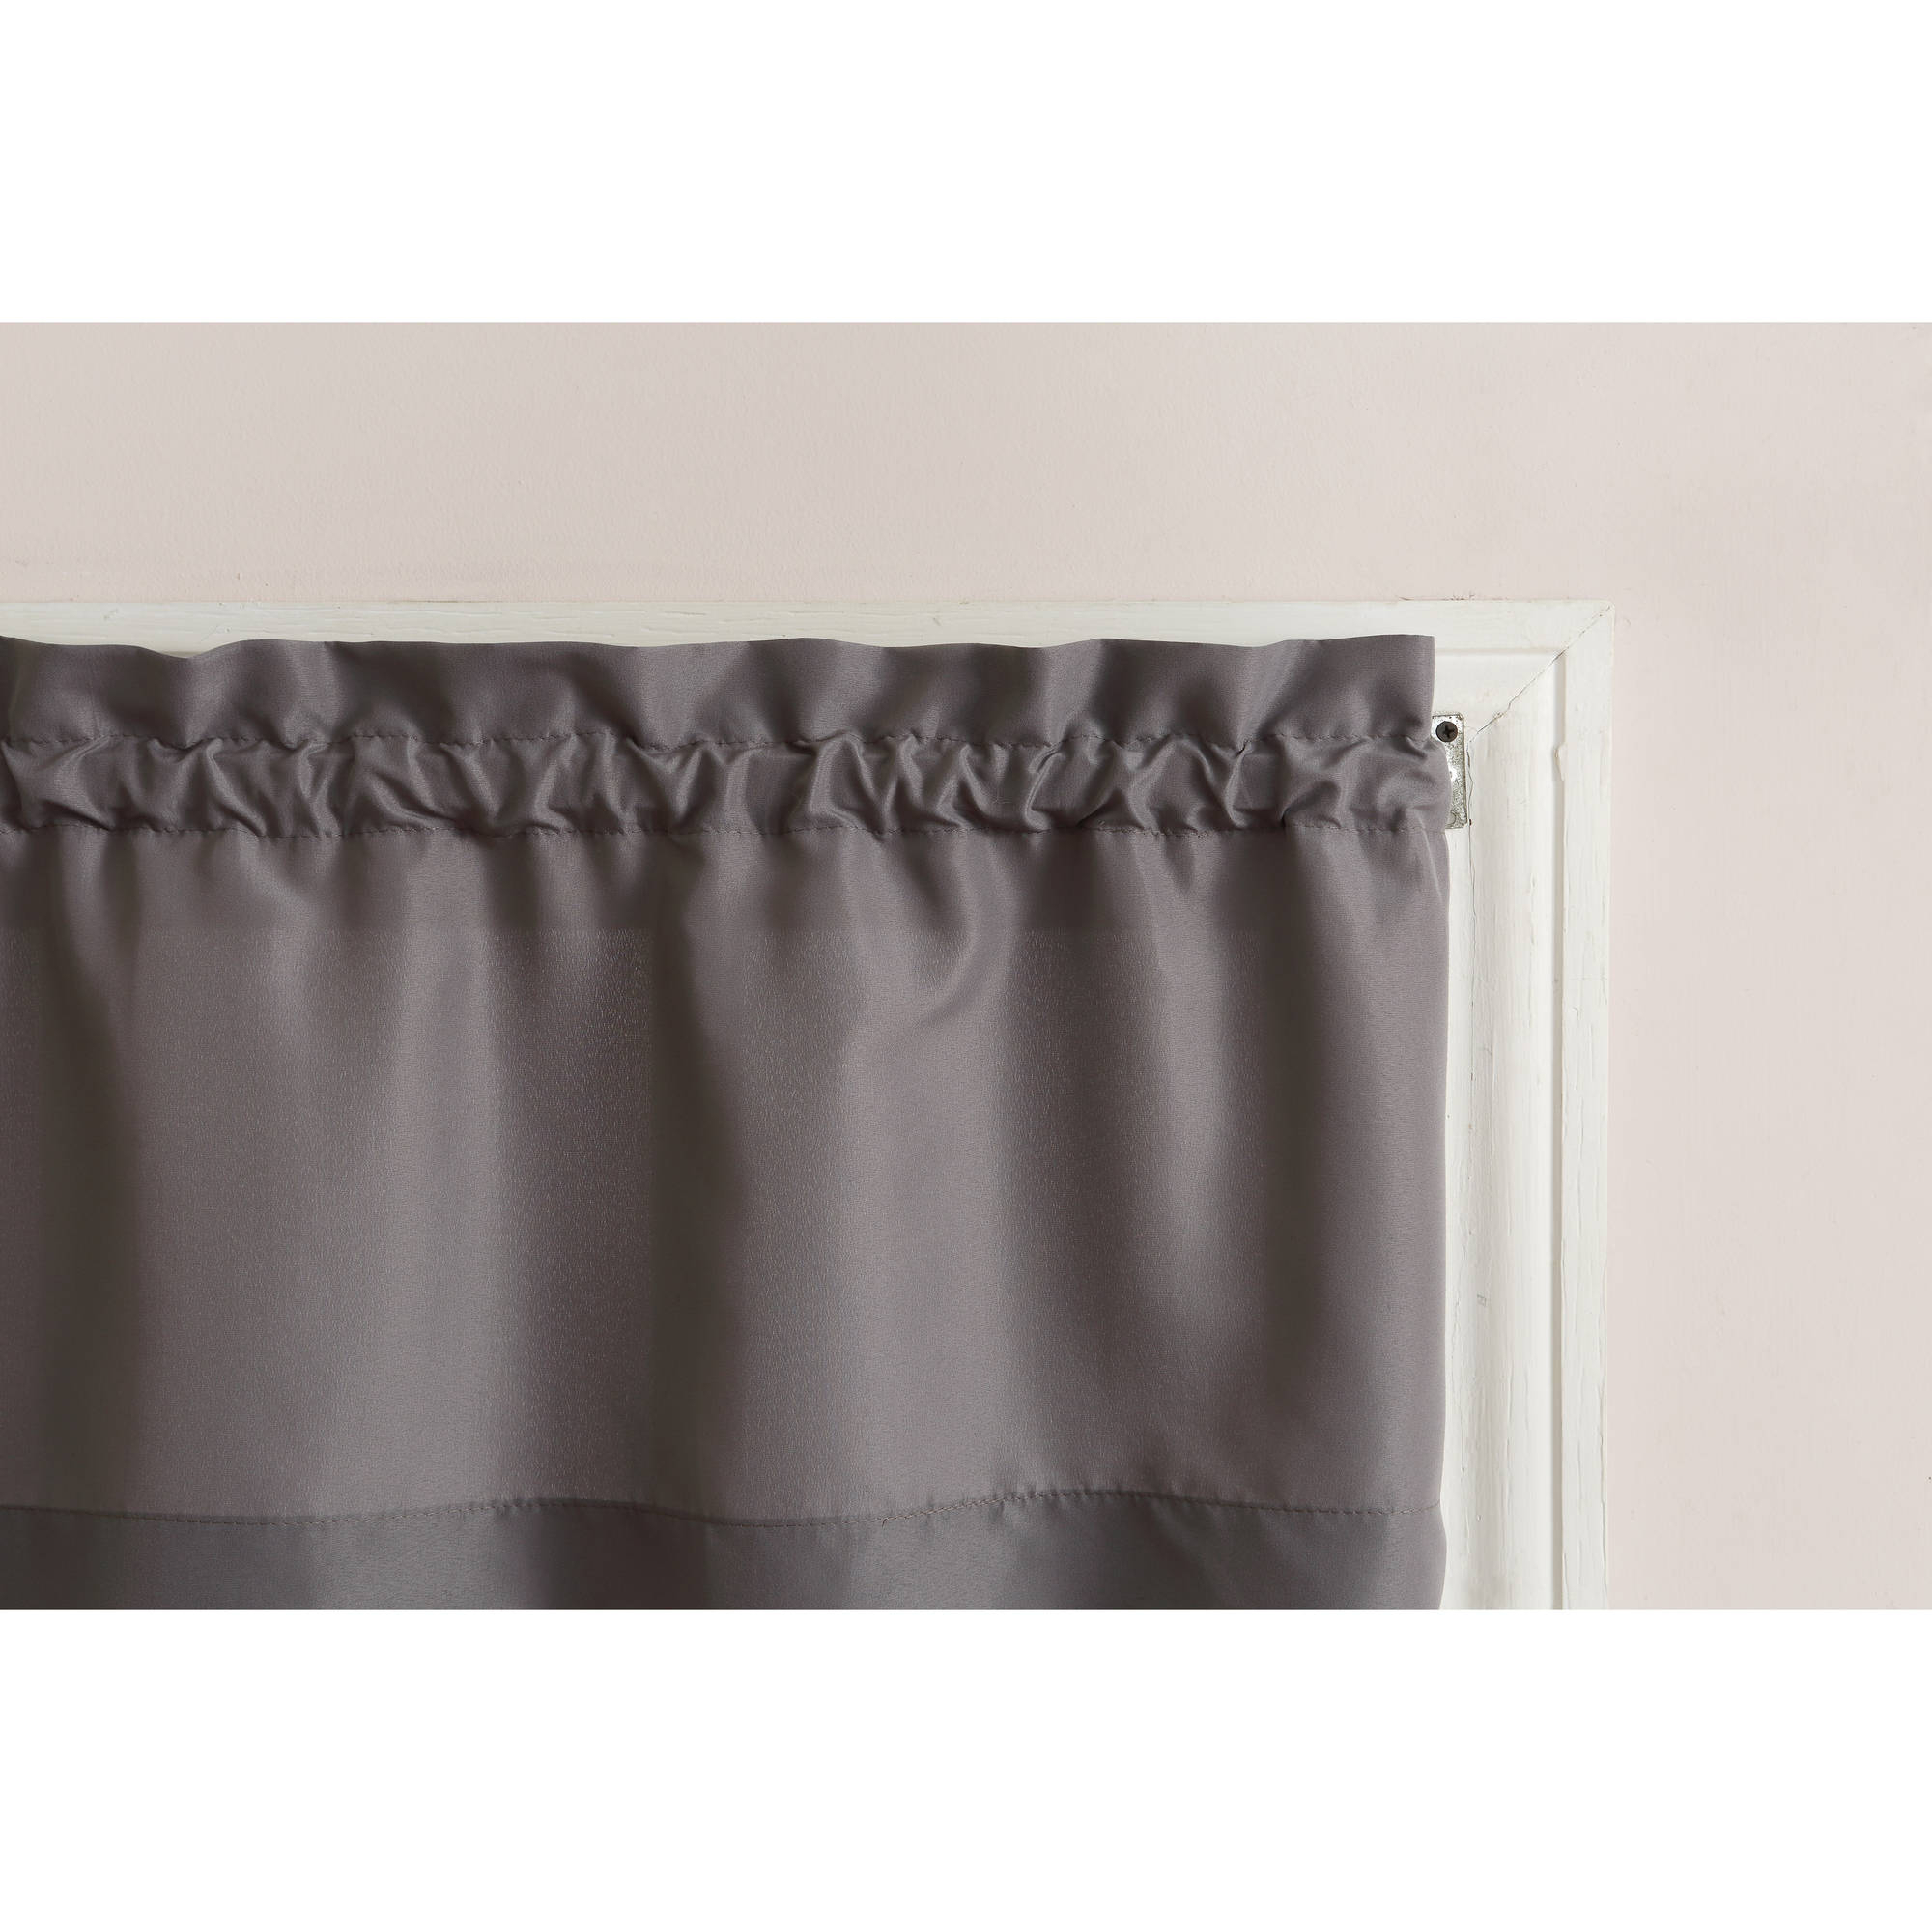 Mainstays Solid 3 Piece Kitchen Curtain Tier And Valance Set With Regard To Solid Microfiber 3 Piece Kitchen Curtain Valance And Tiers Sets (View 7 of 20)